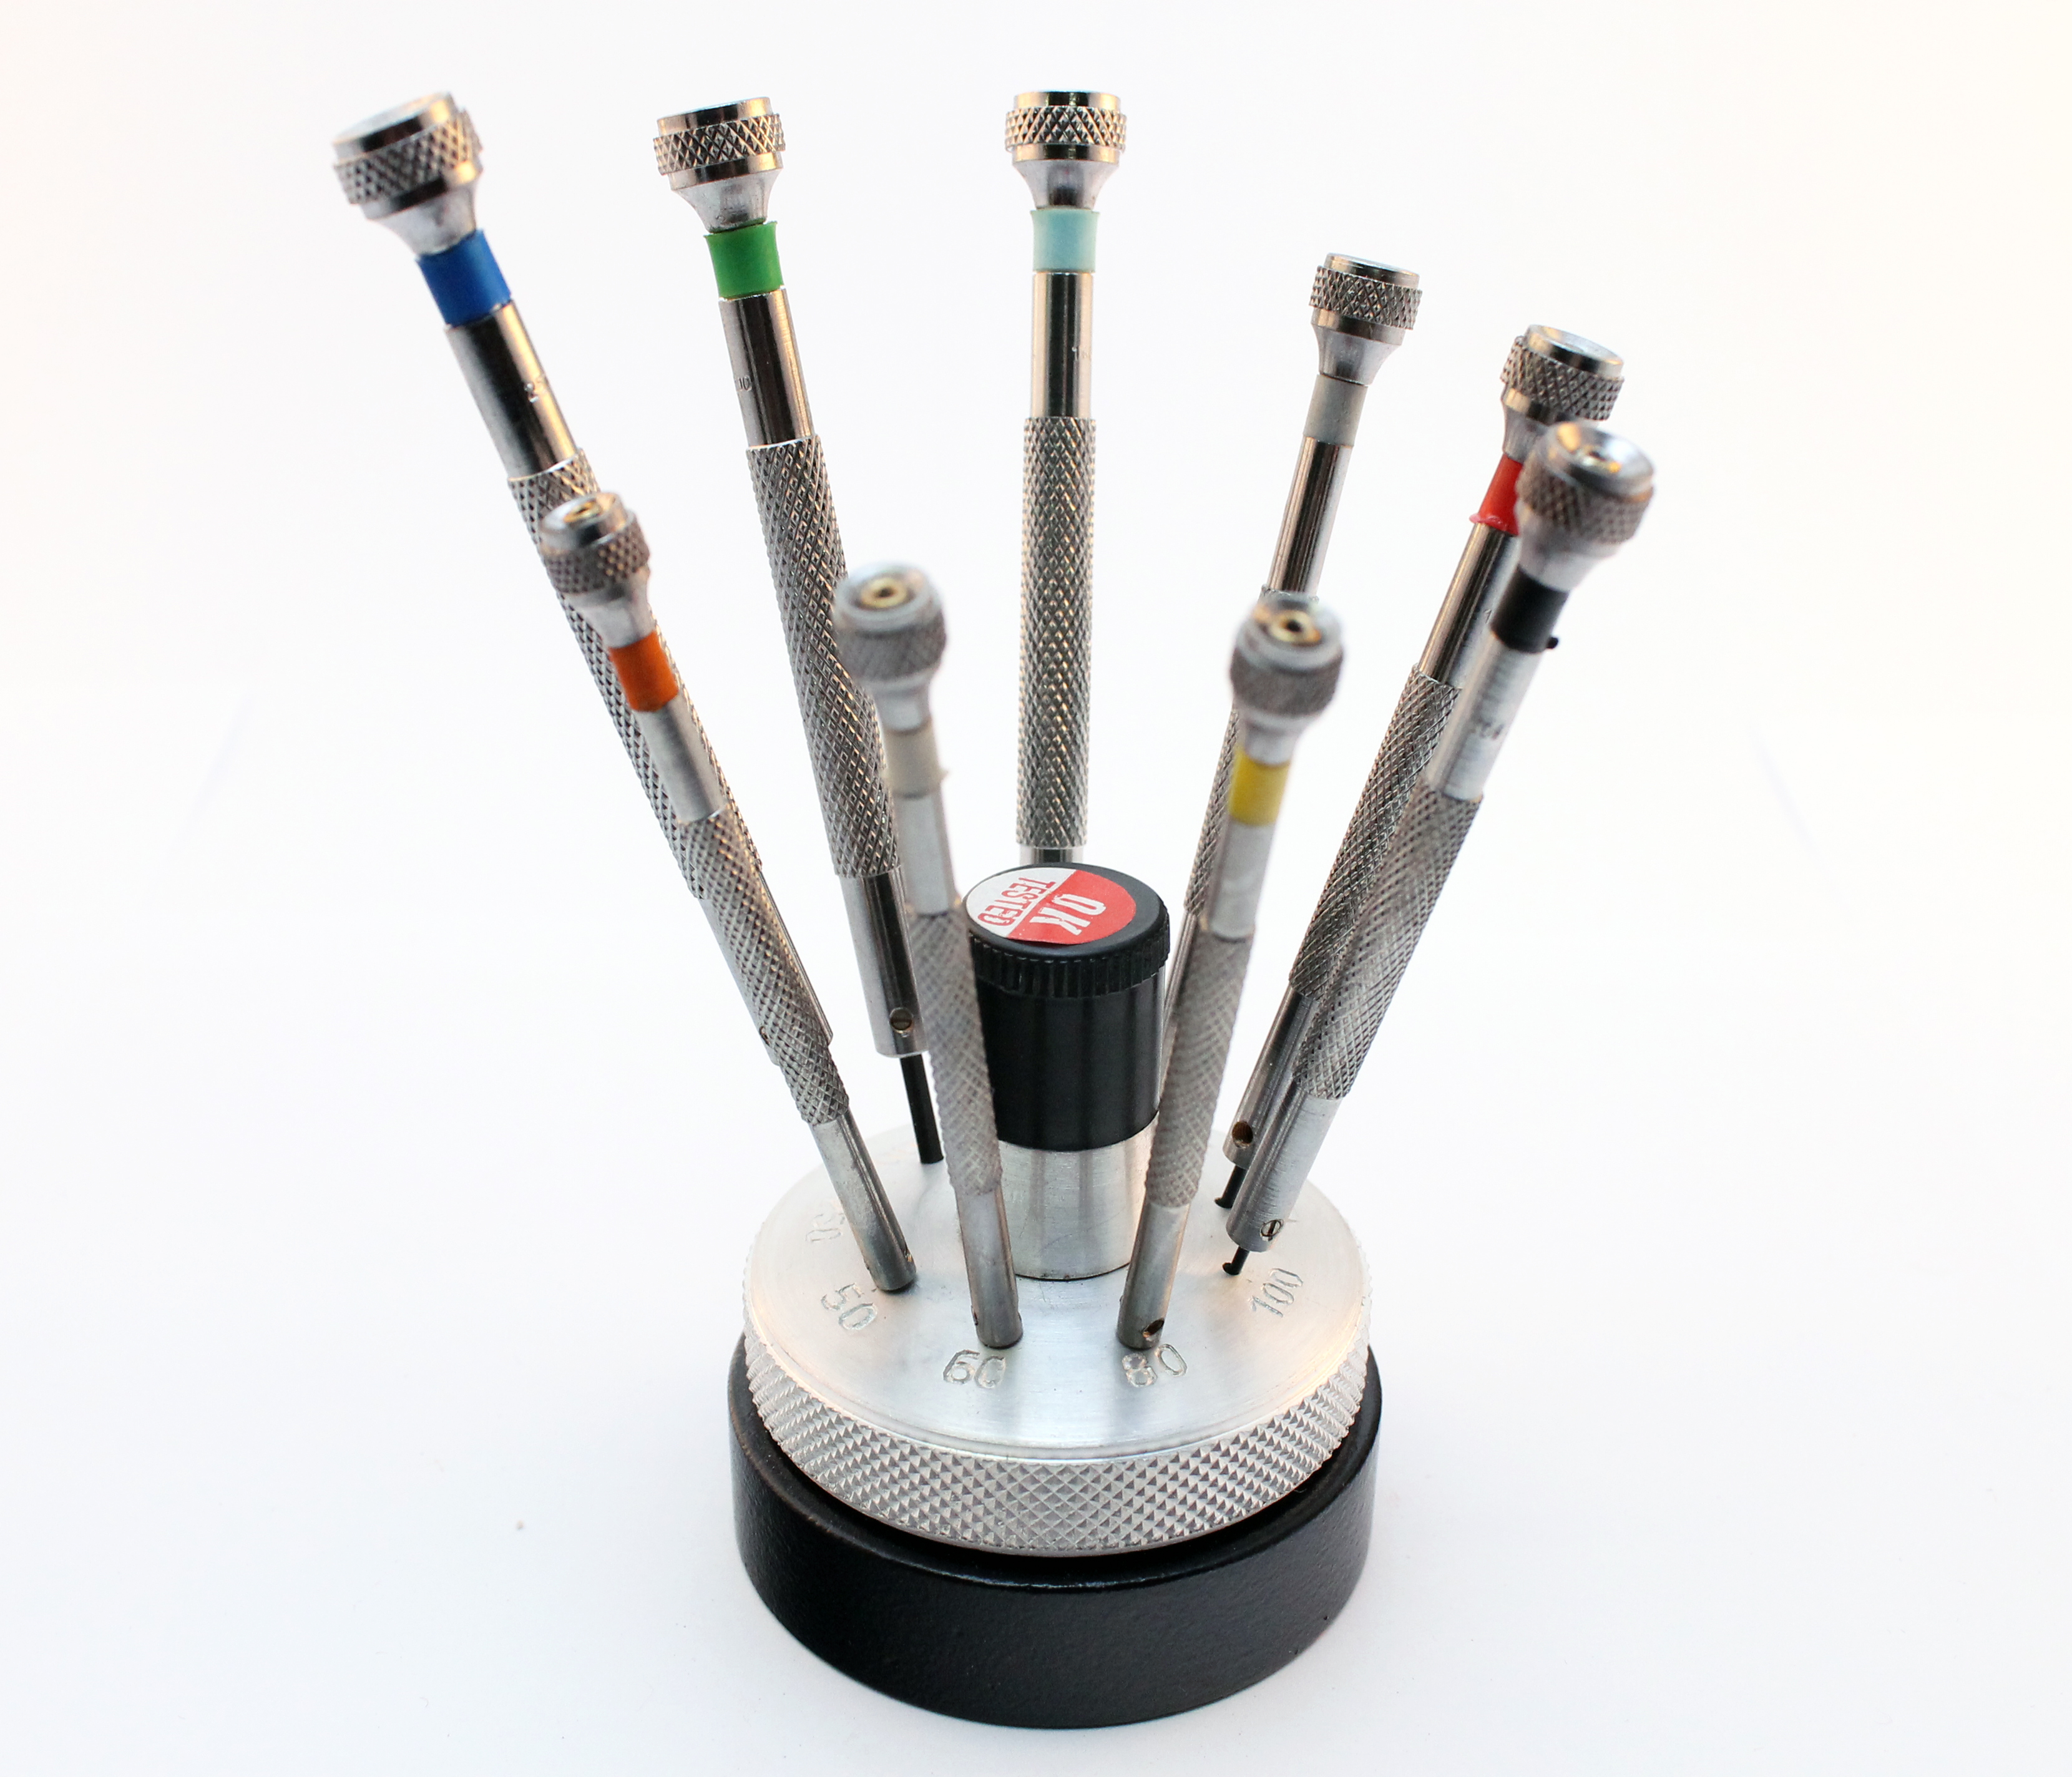 precision watch screwdriver set of 9 pcs jewelry watchmakers revolving stand ebay. Black Bedroom Furniture Sets. Home Design Ideas